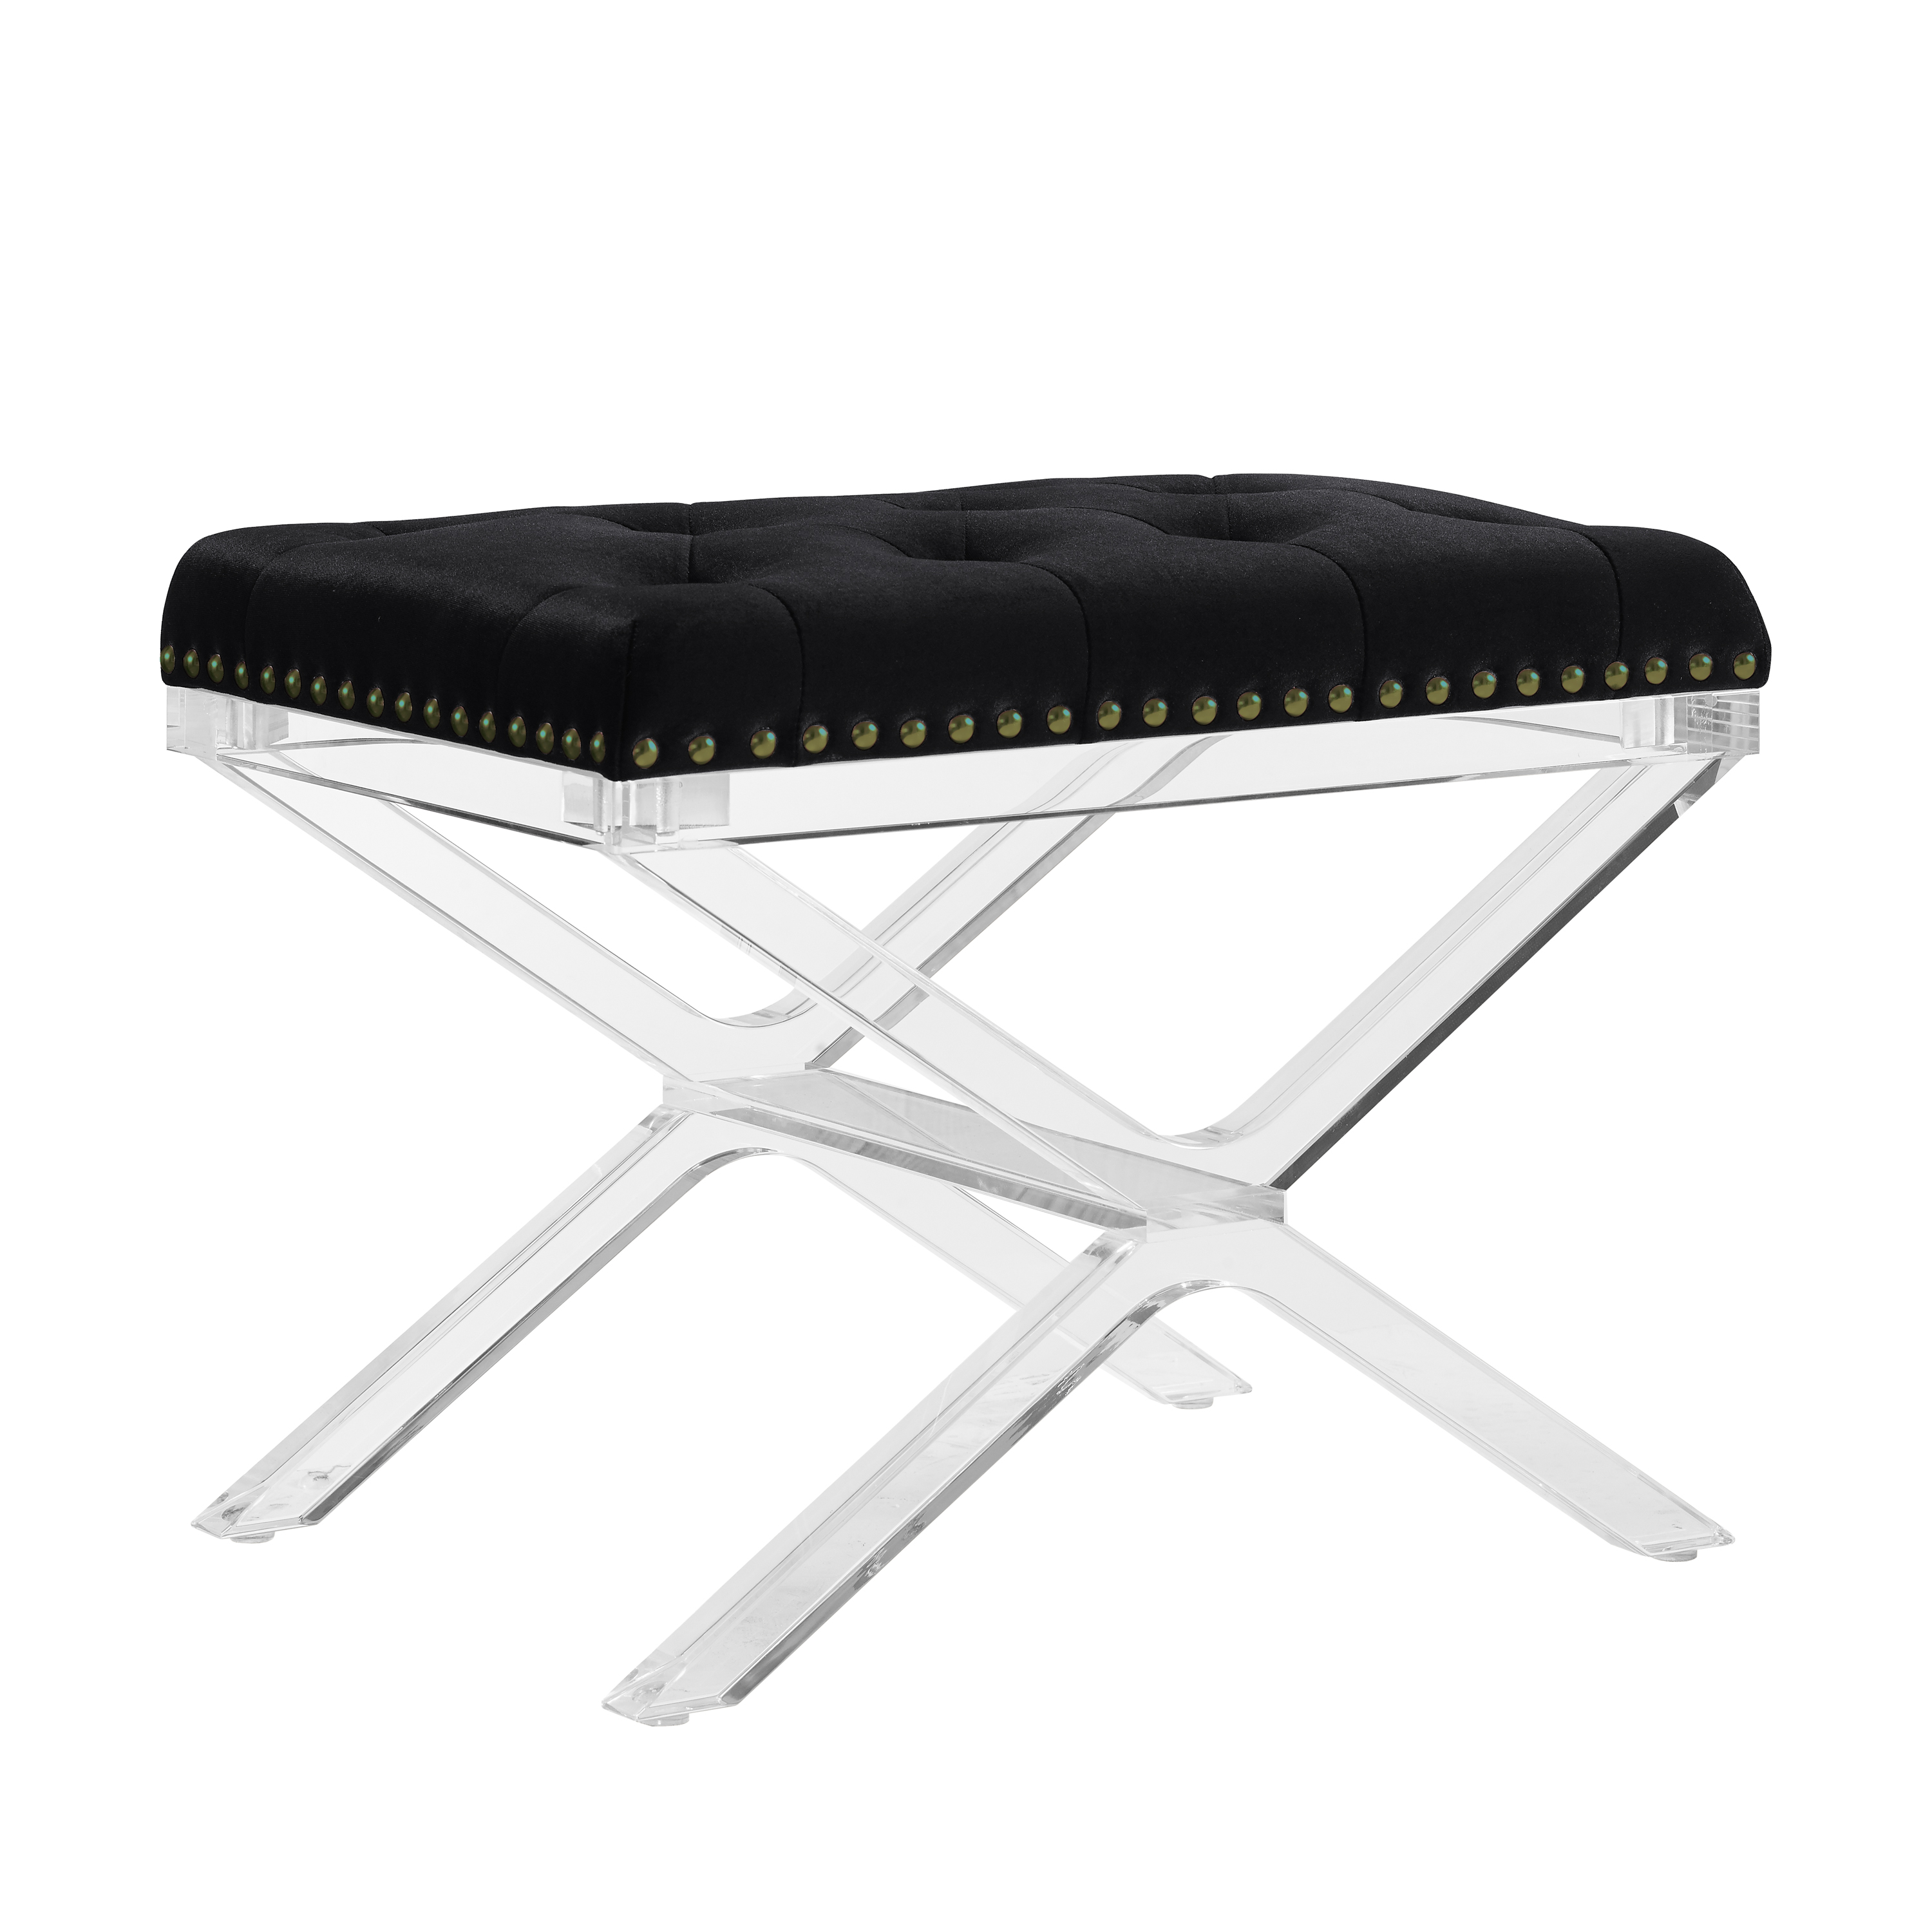 Linon Kelsi X Base Vanity Bench, Black, Clear Legs, 18 inches Tall by Linon